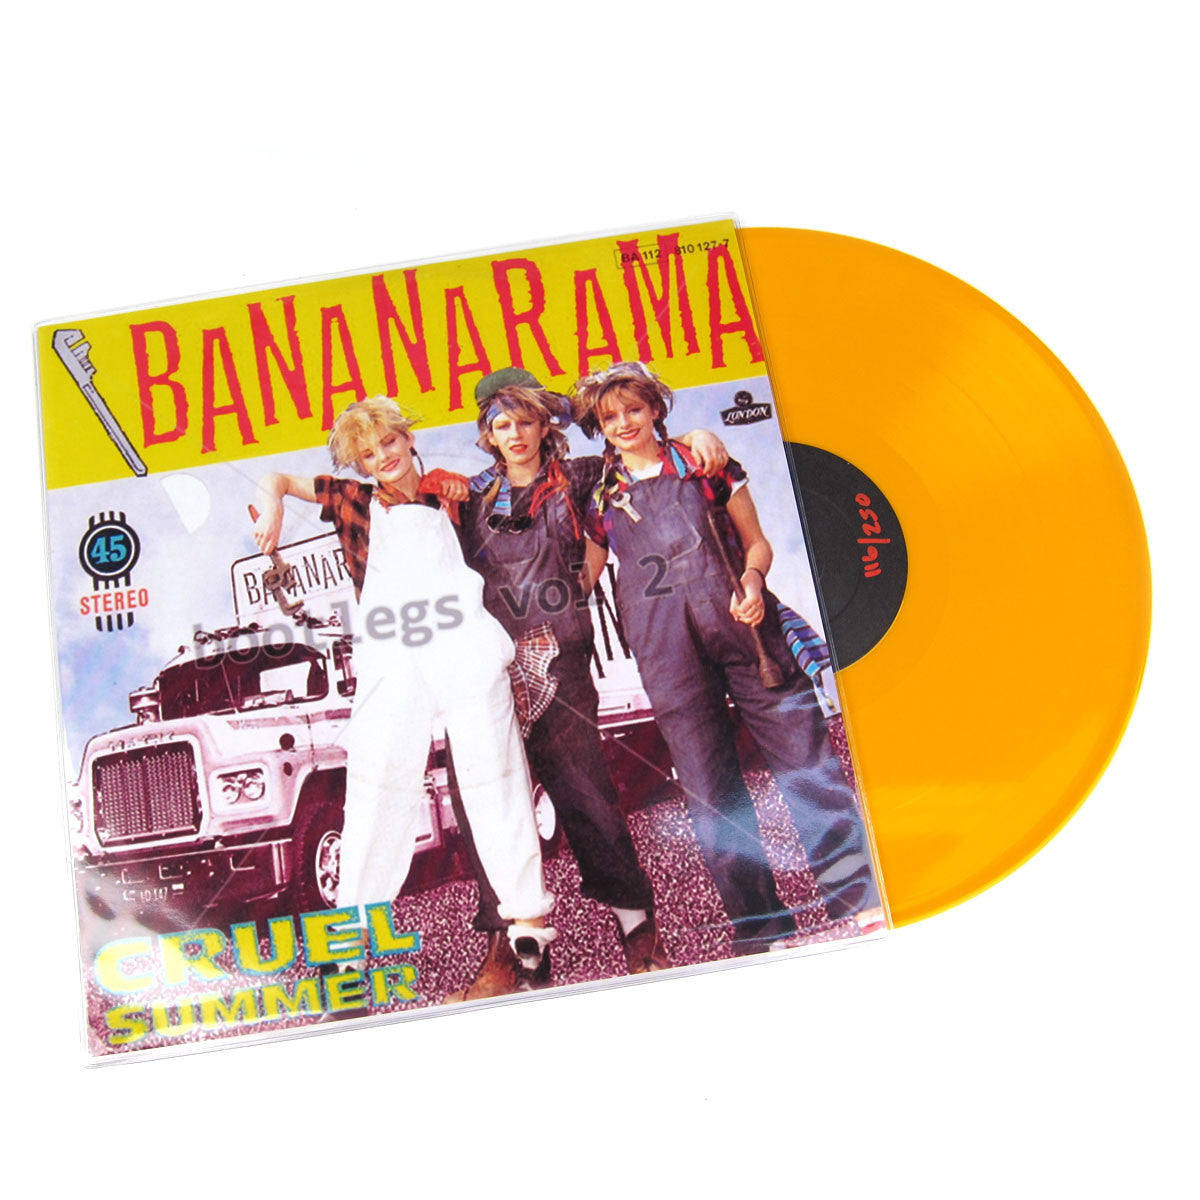 Sammy Bananas: Bootlegs Vol.2 (Colored Vinyl) Vinyl 12""